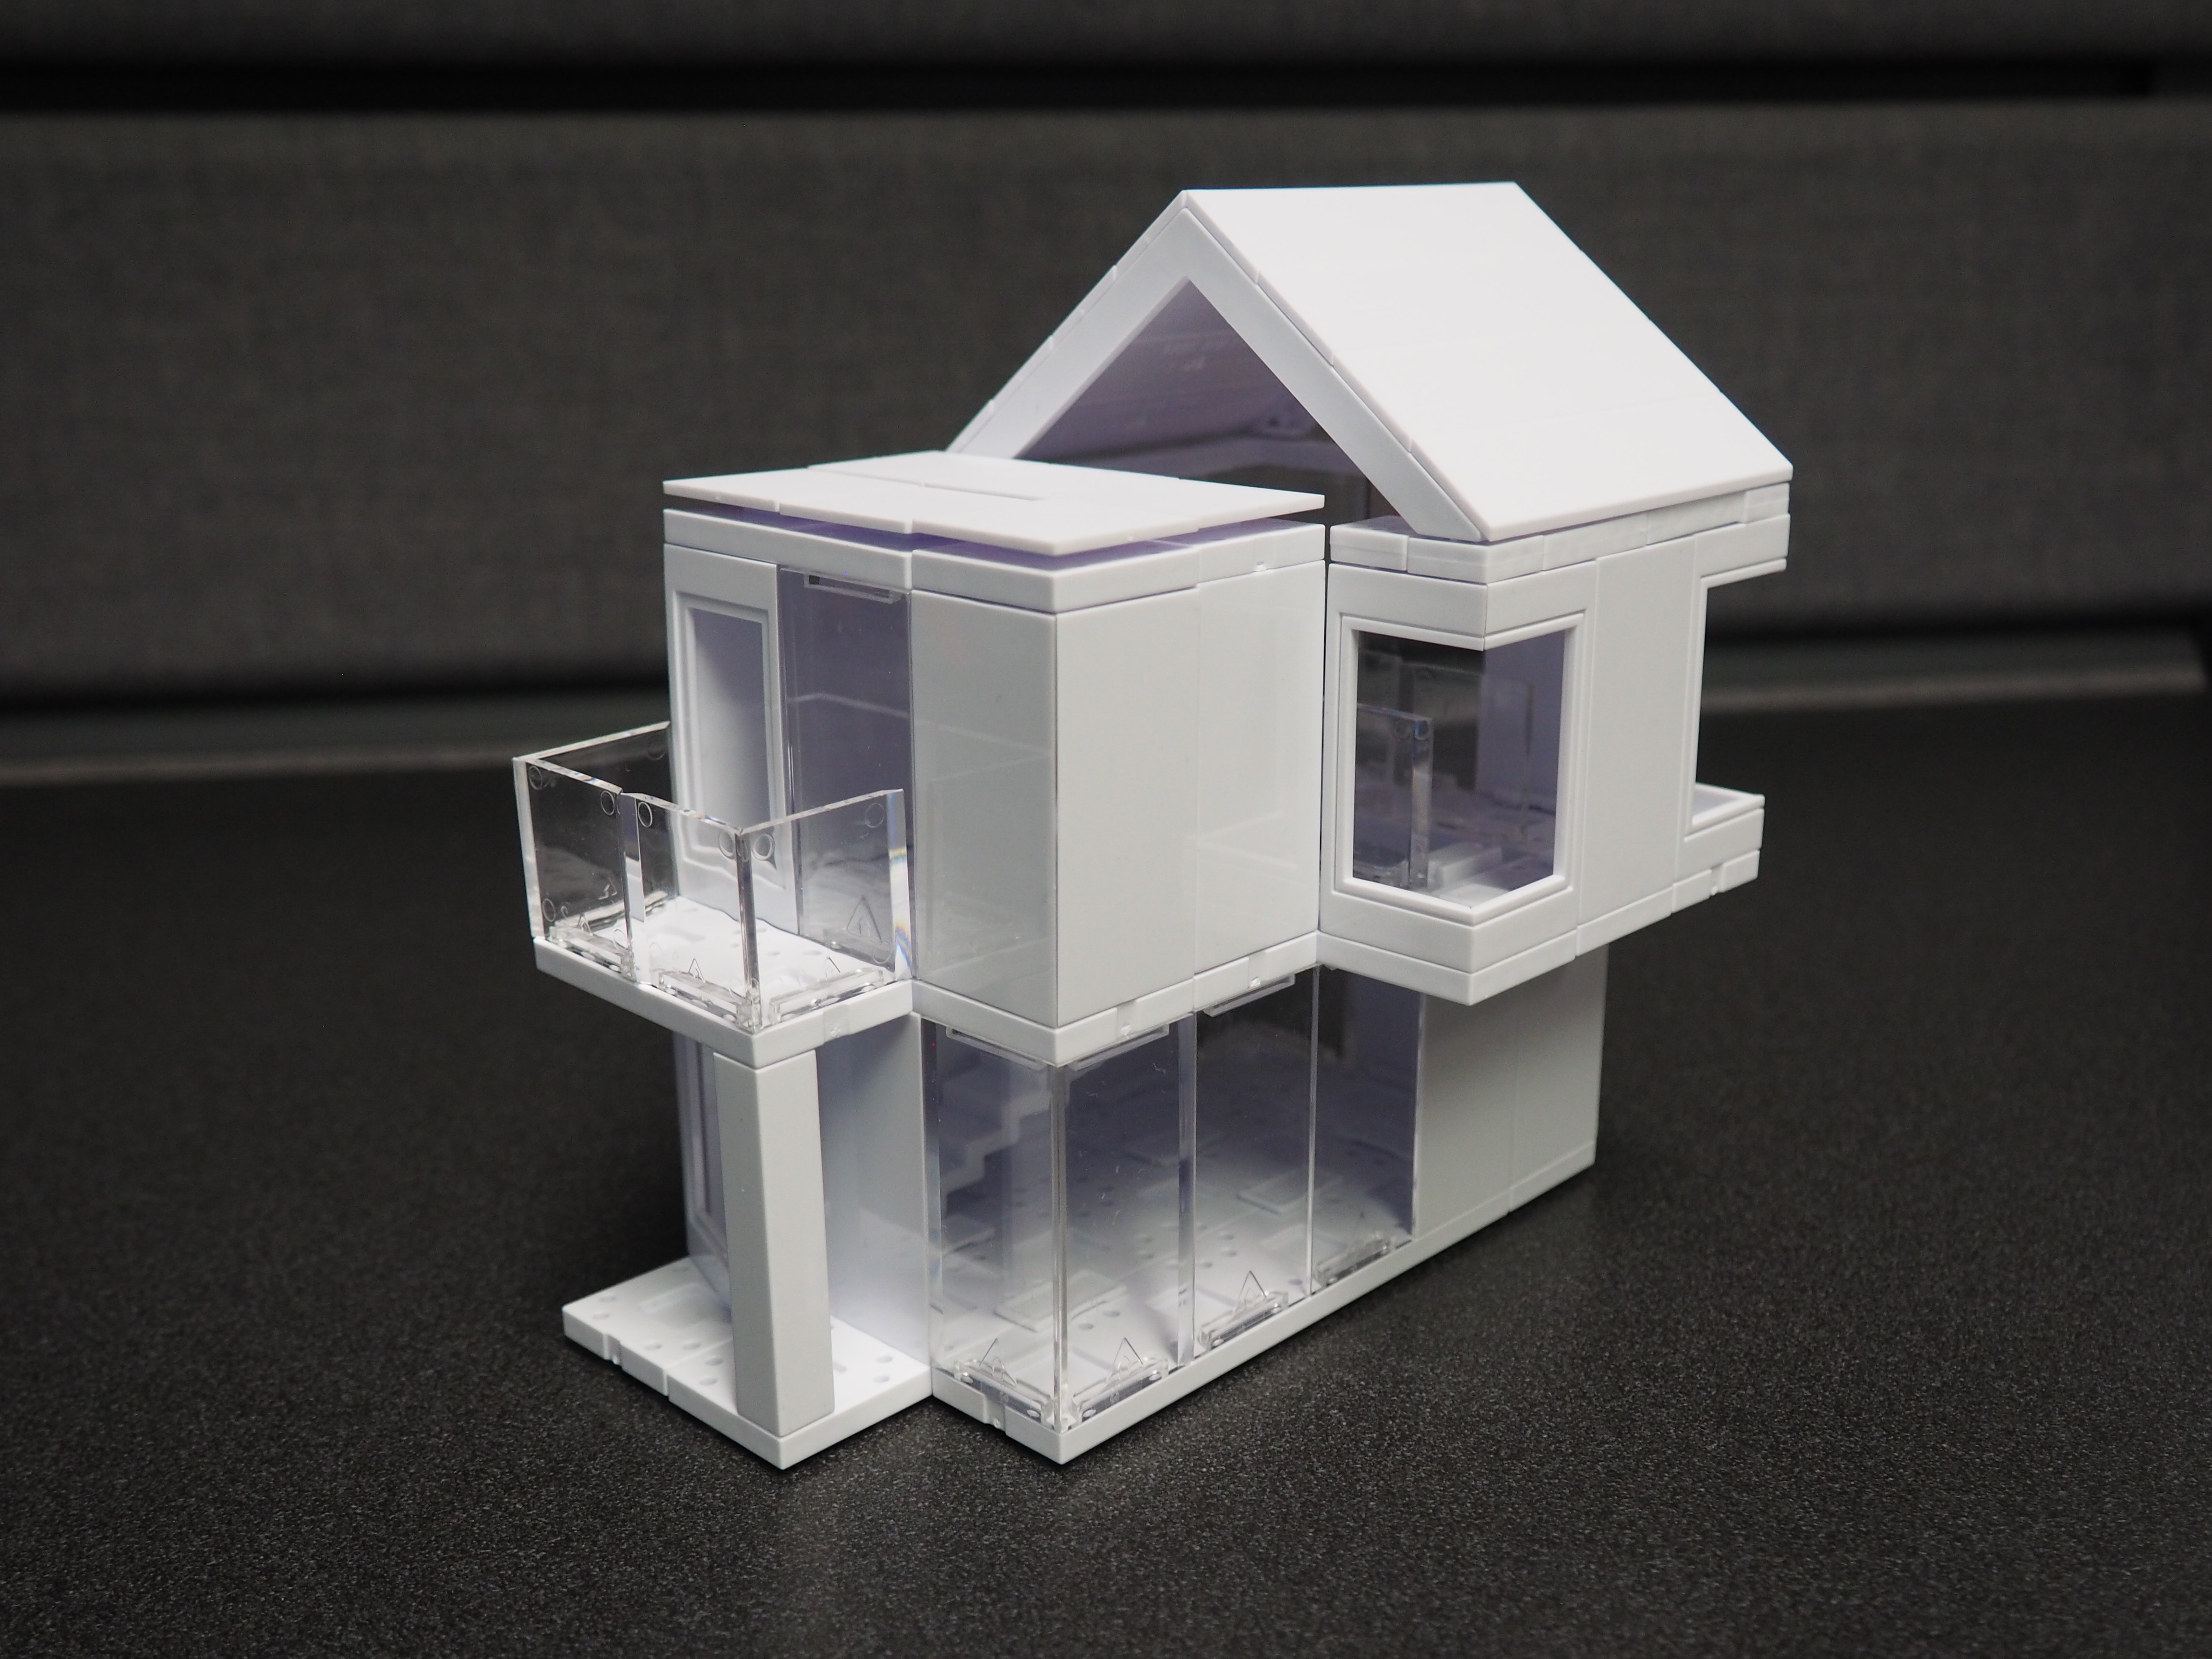 arckit 3 steps to creating a professional architectural model